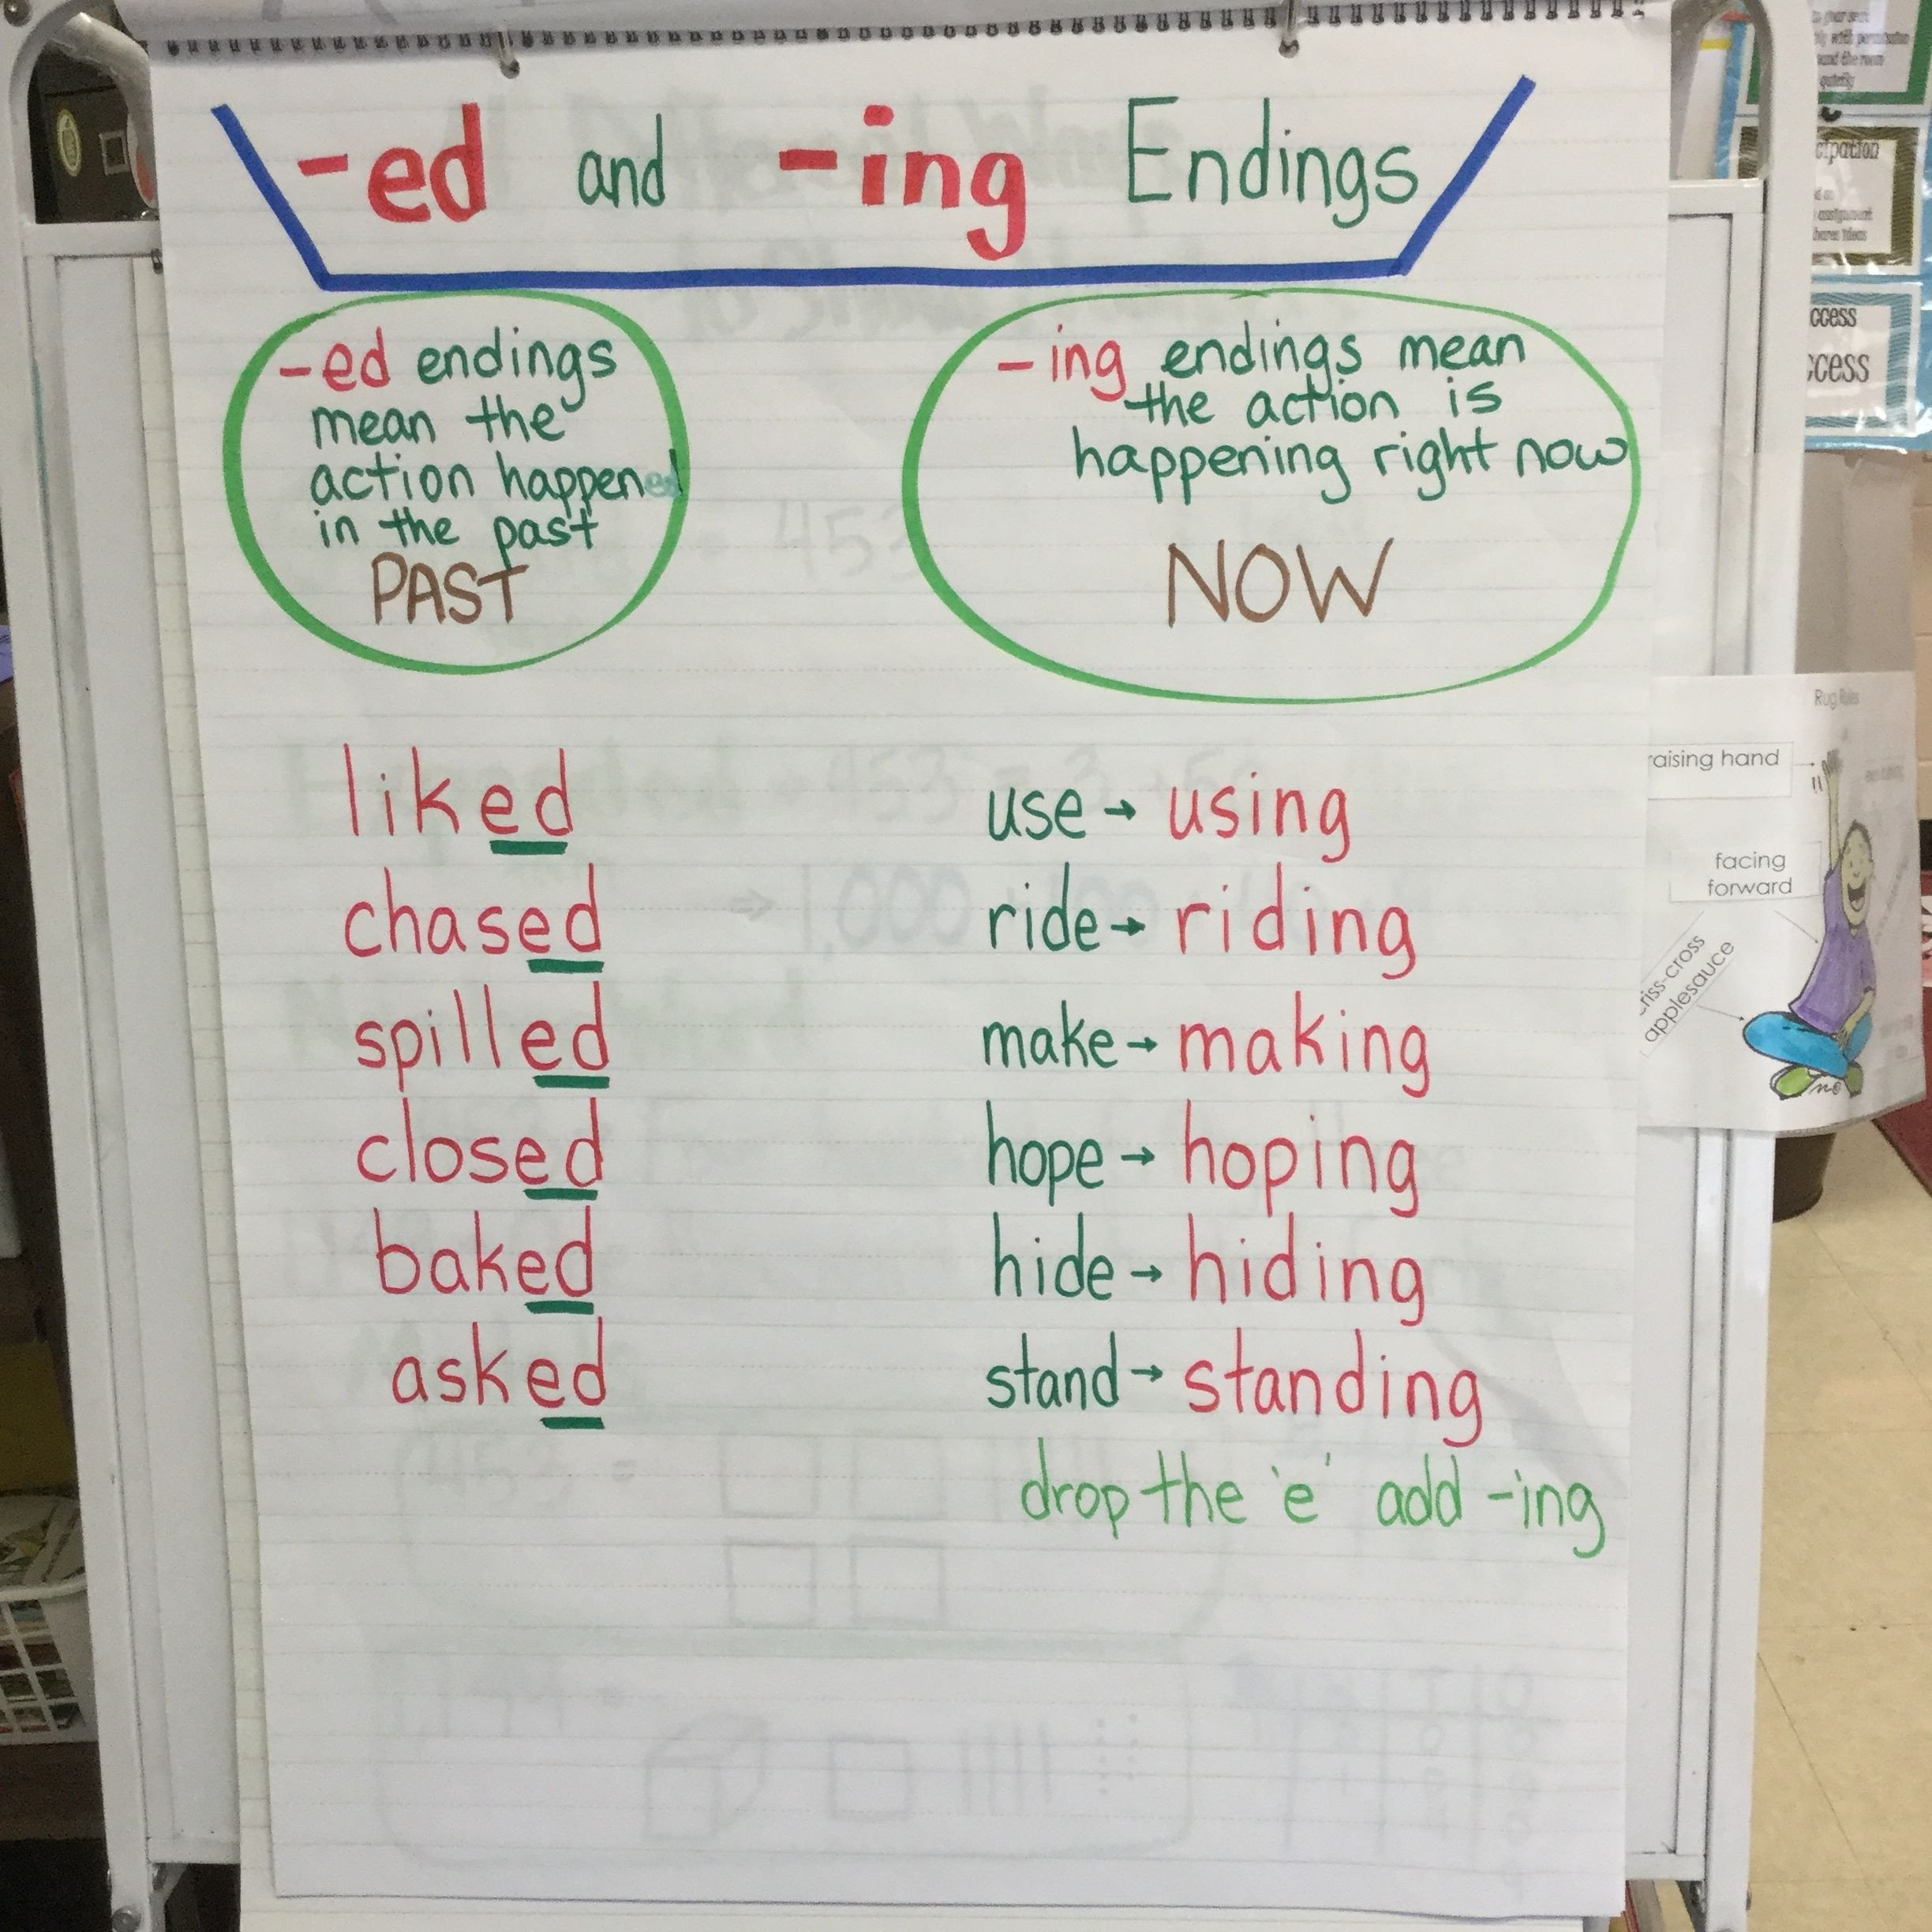 Adding Ing to Verbs Worksheet Ed and Ing Endings Drop the E and Add Ing